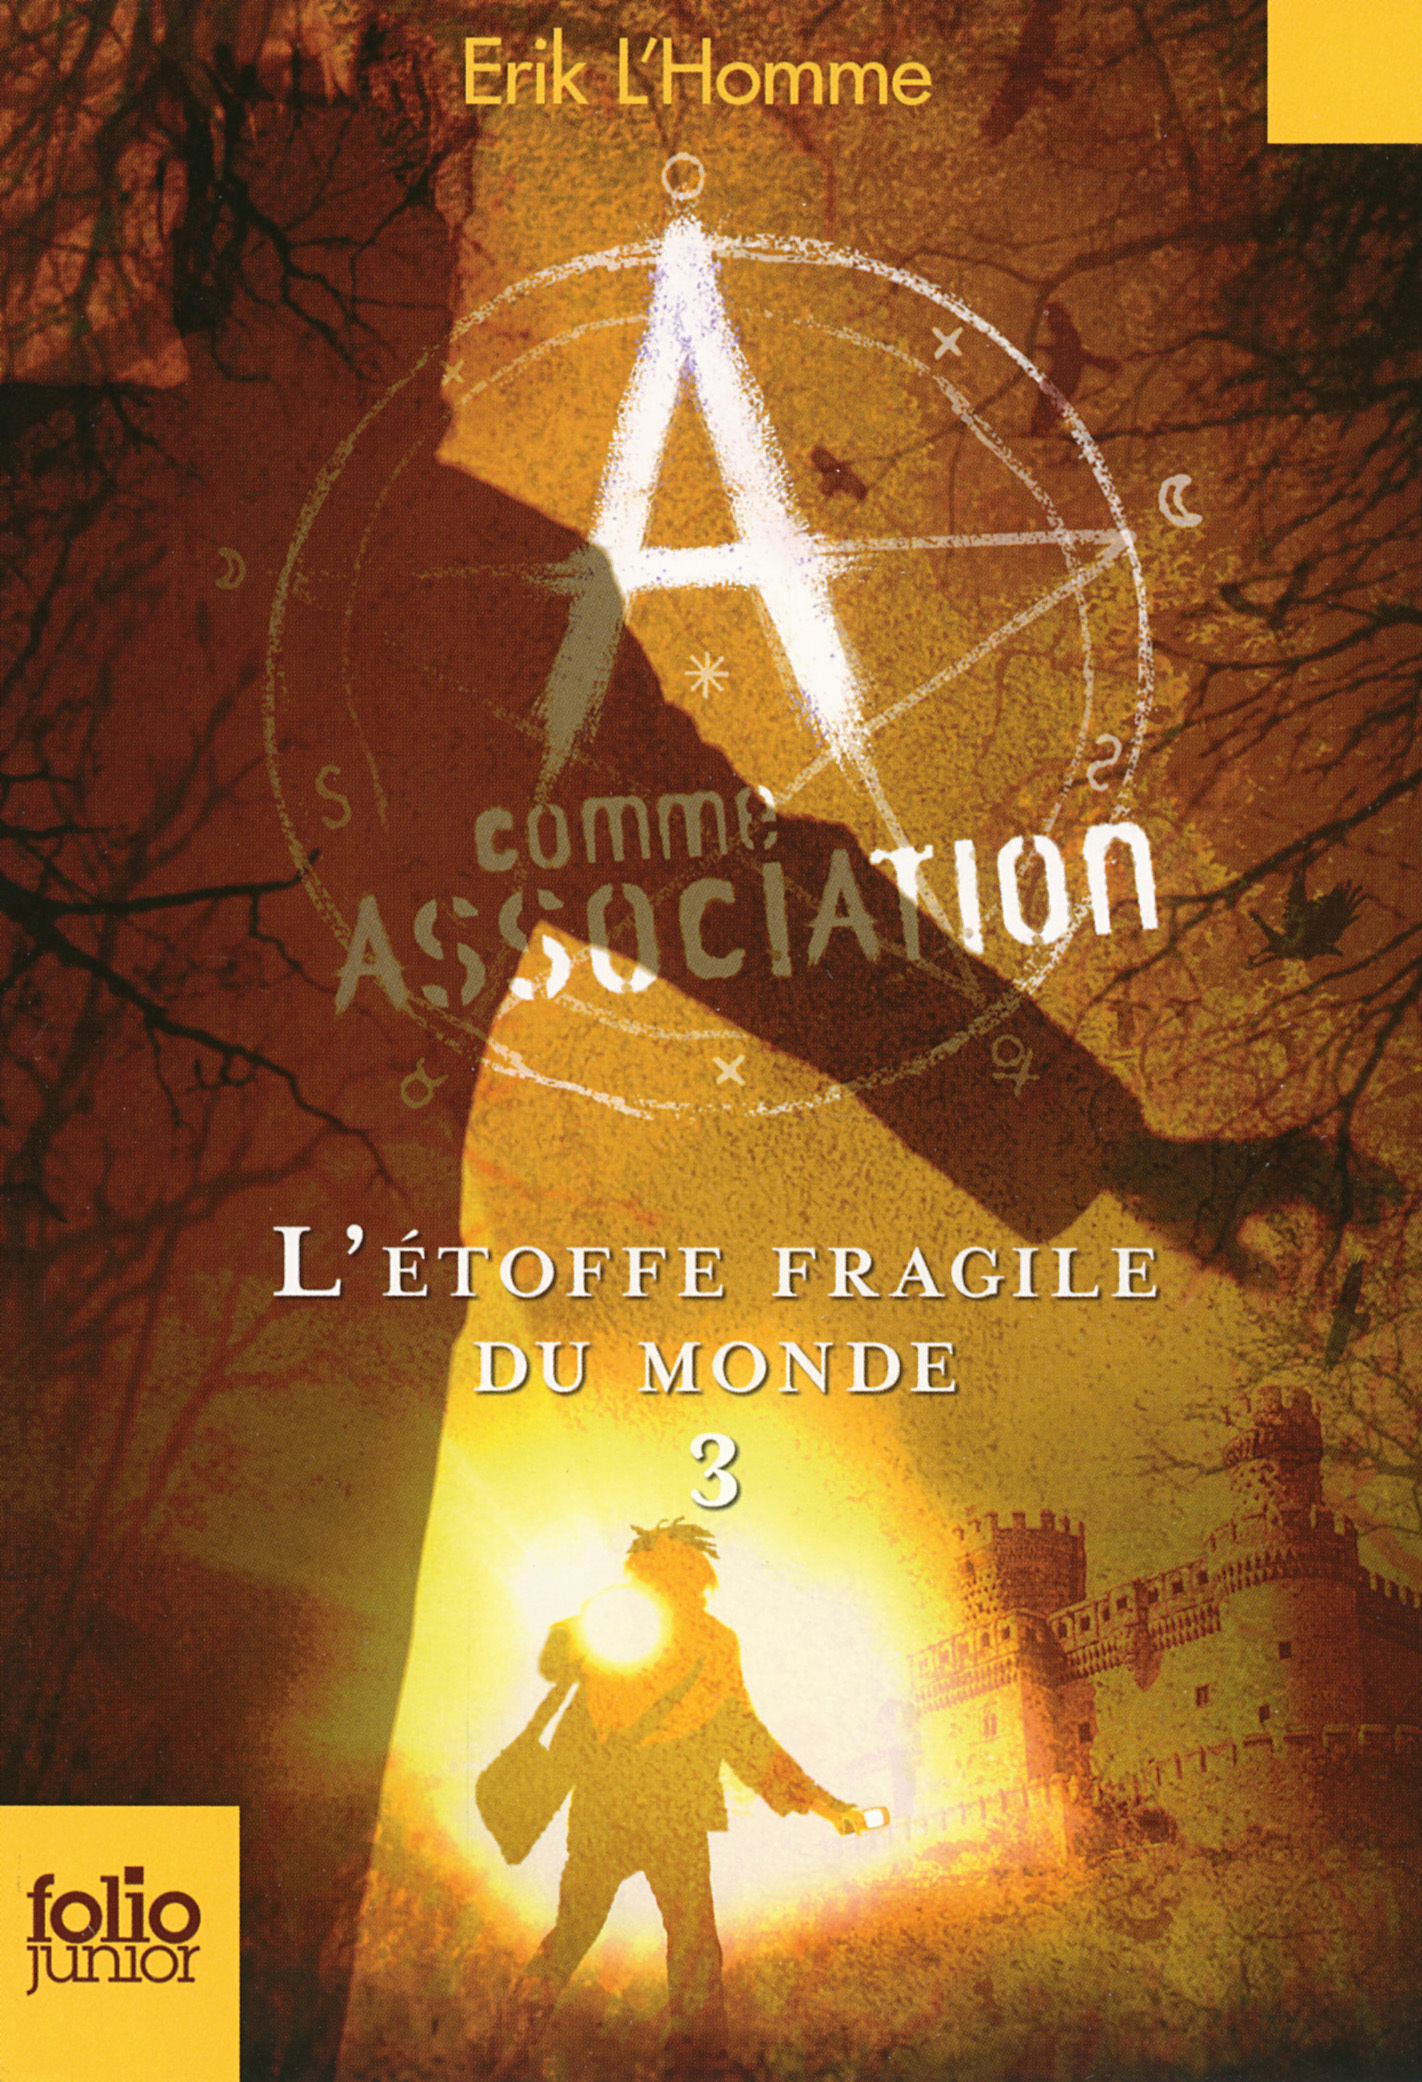 A COMME ASSOCIATION, 3 : L'ETOFFE FRAGILE DU MONDE